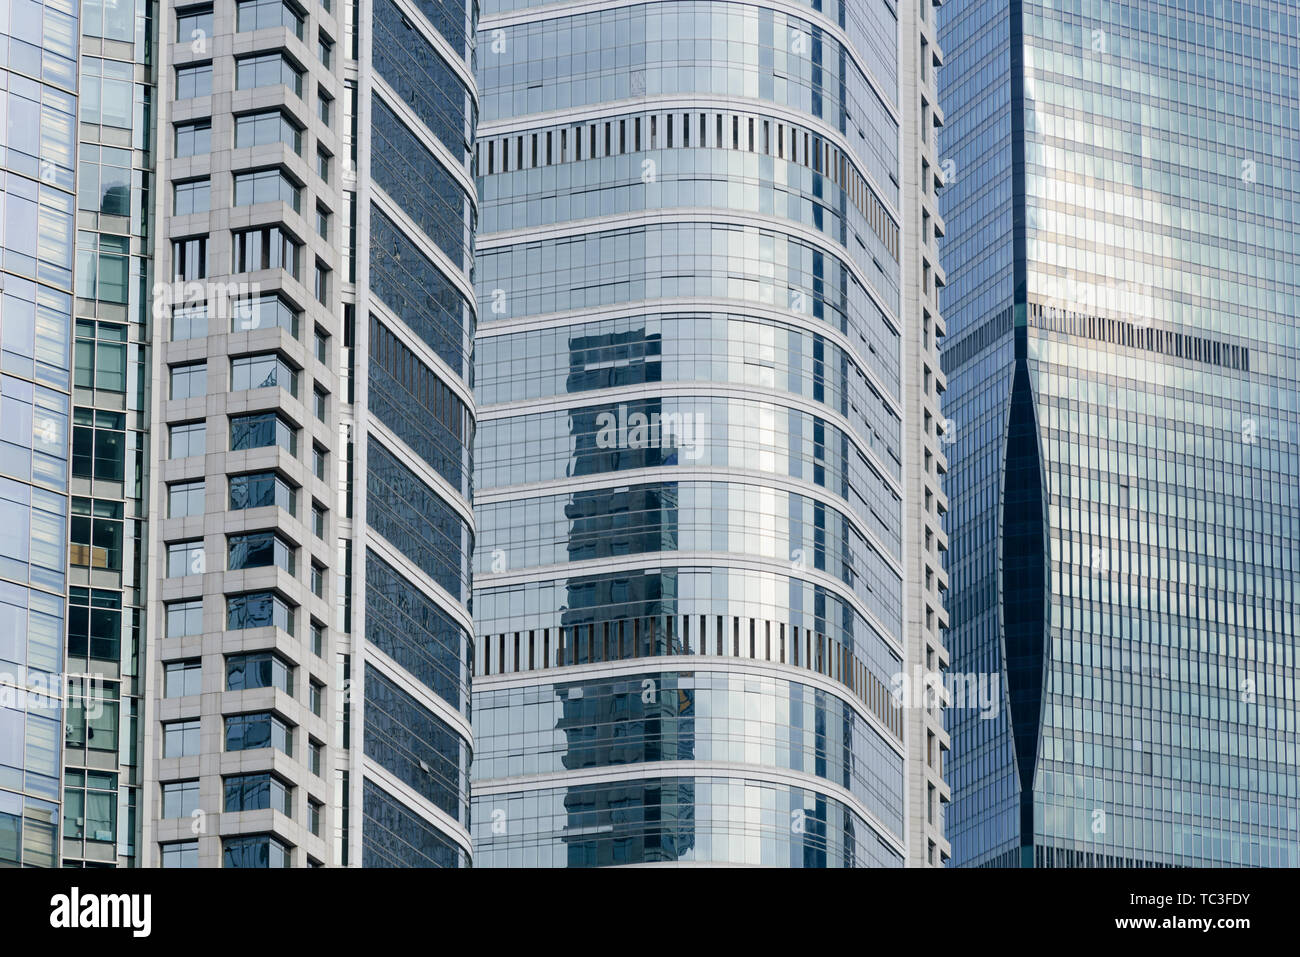 Commercial buildings Stock Photo